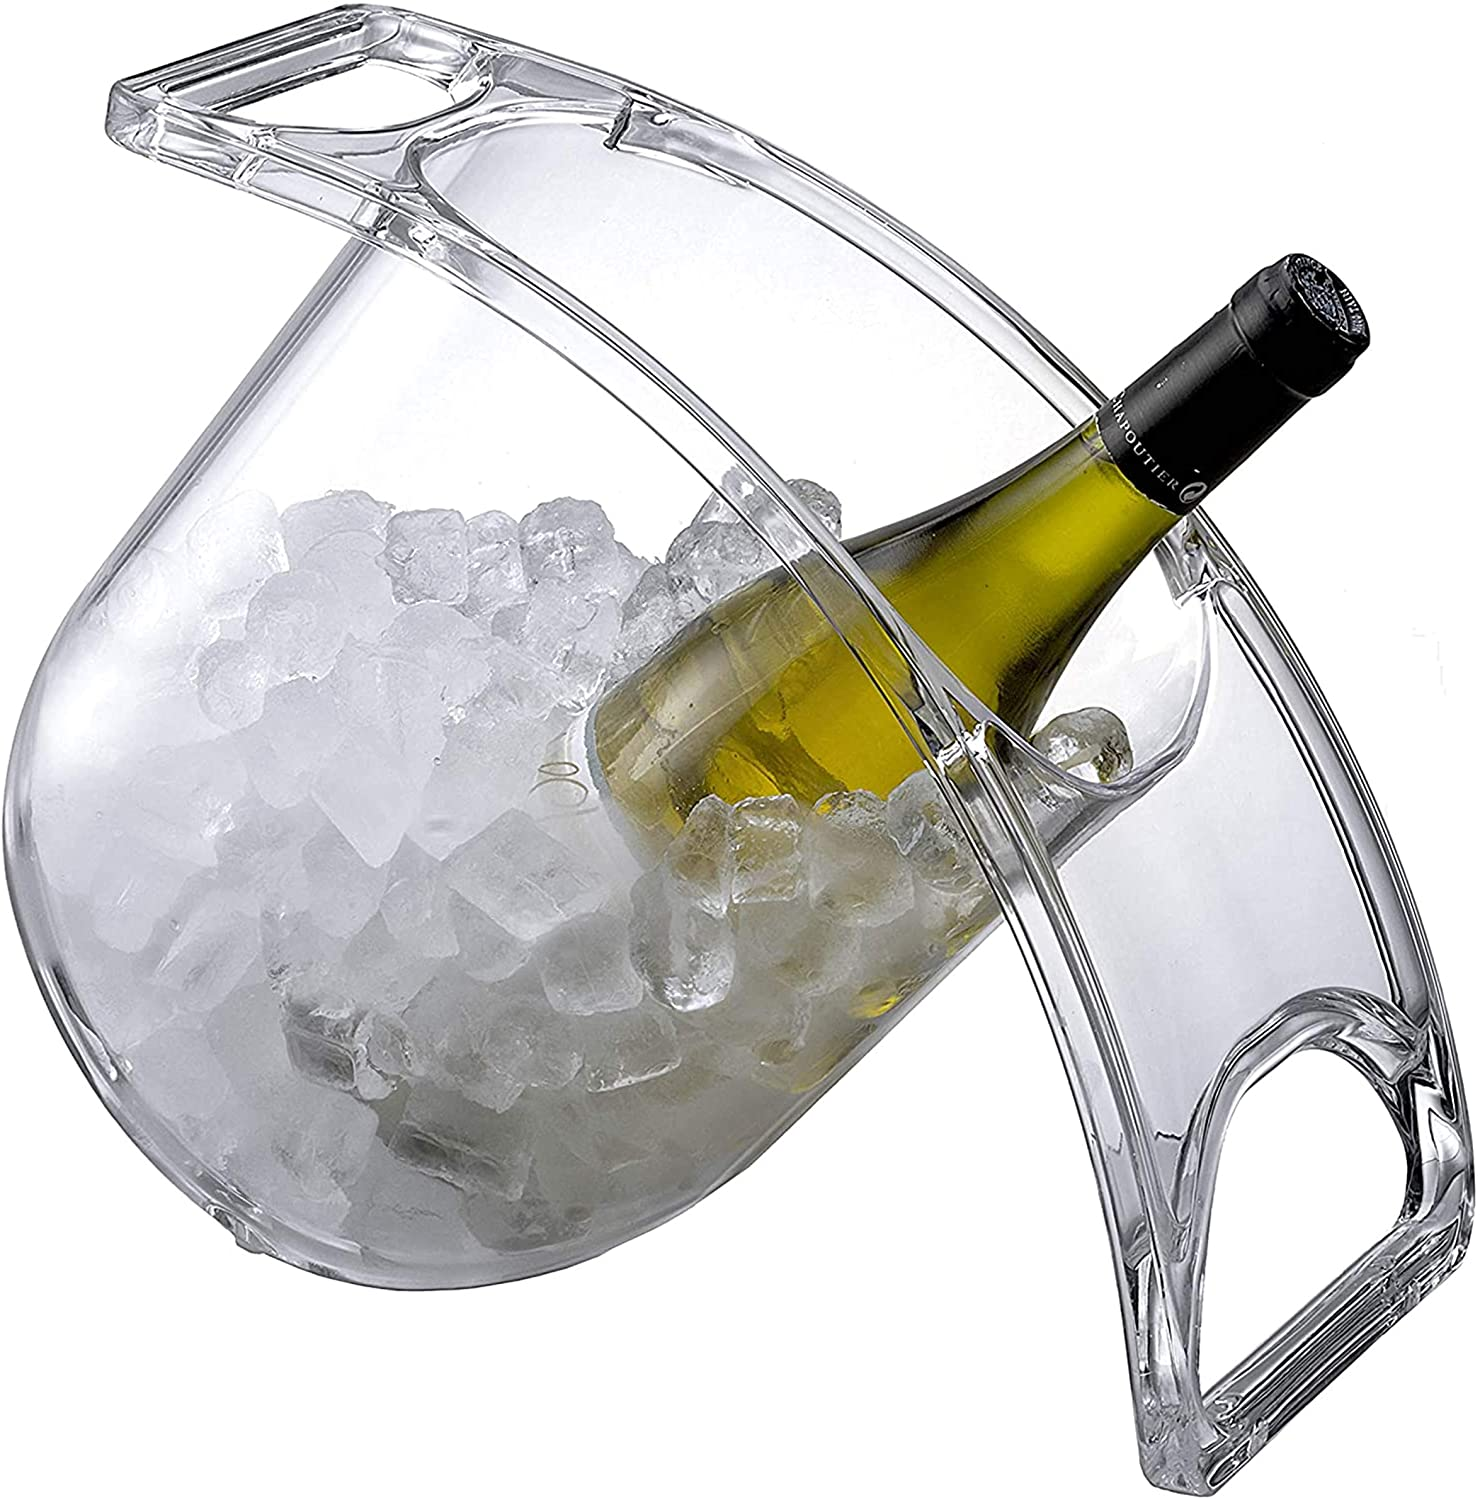 Coolin Curve Ice Bucket for Wine Champagne Beer Beverages Evenly Chills Drinks 2 Quarts